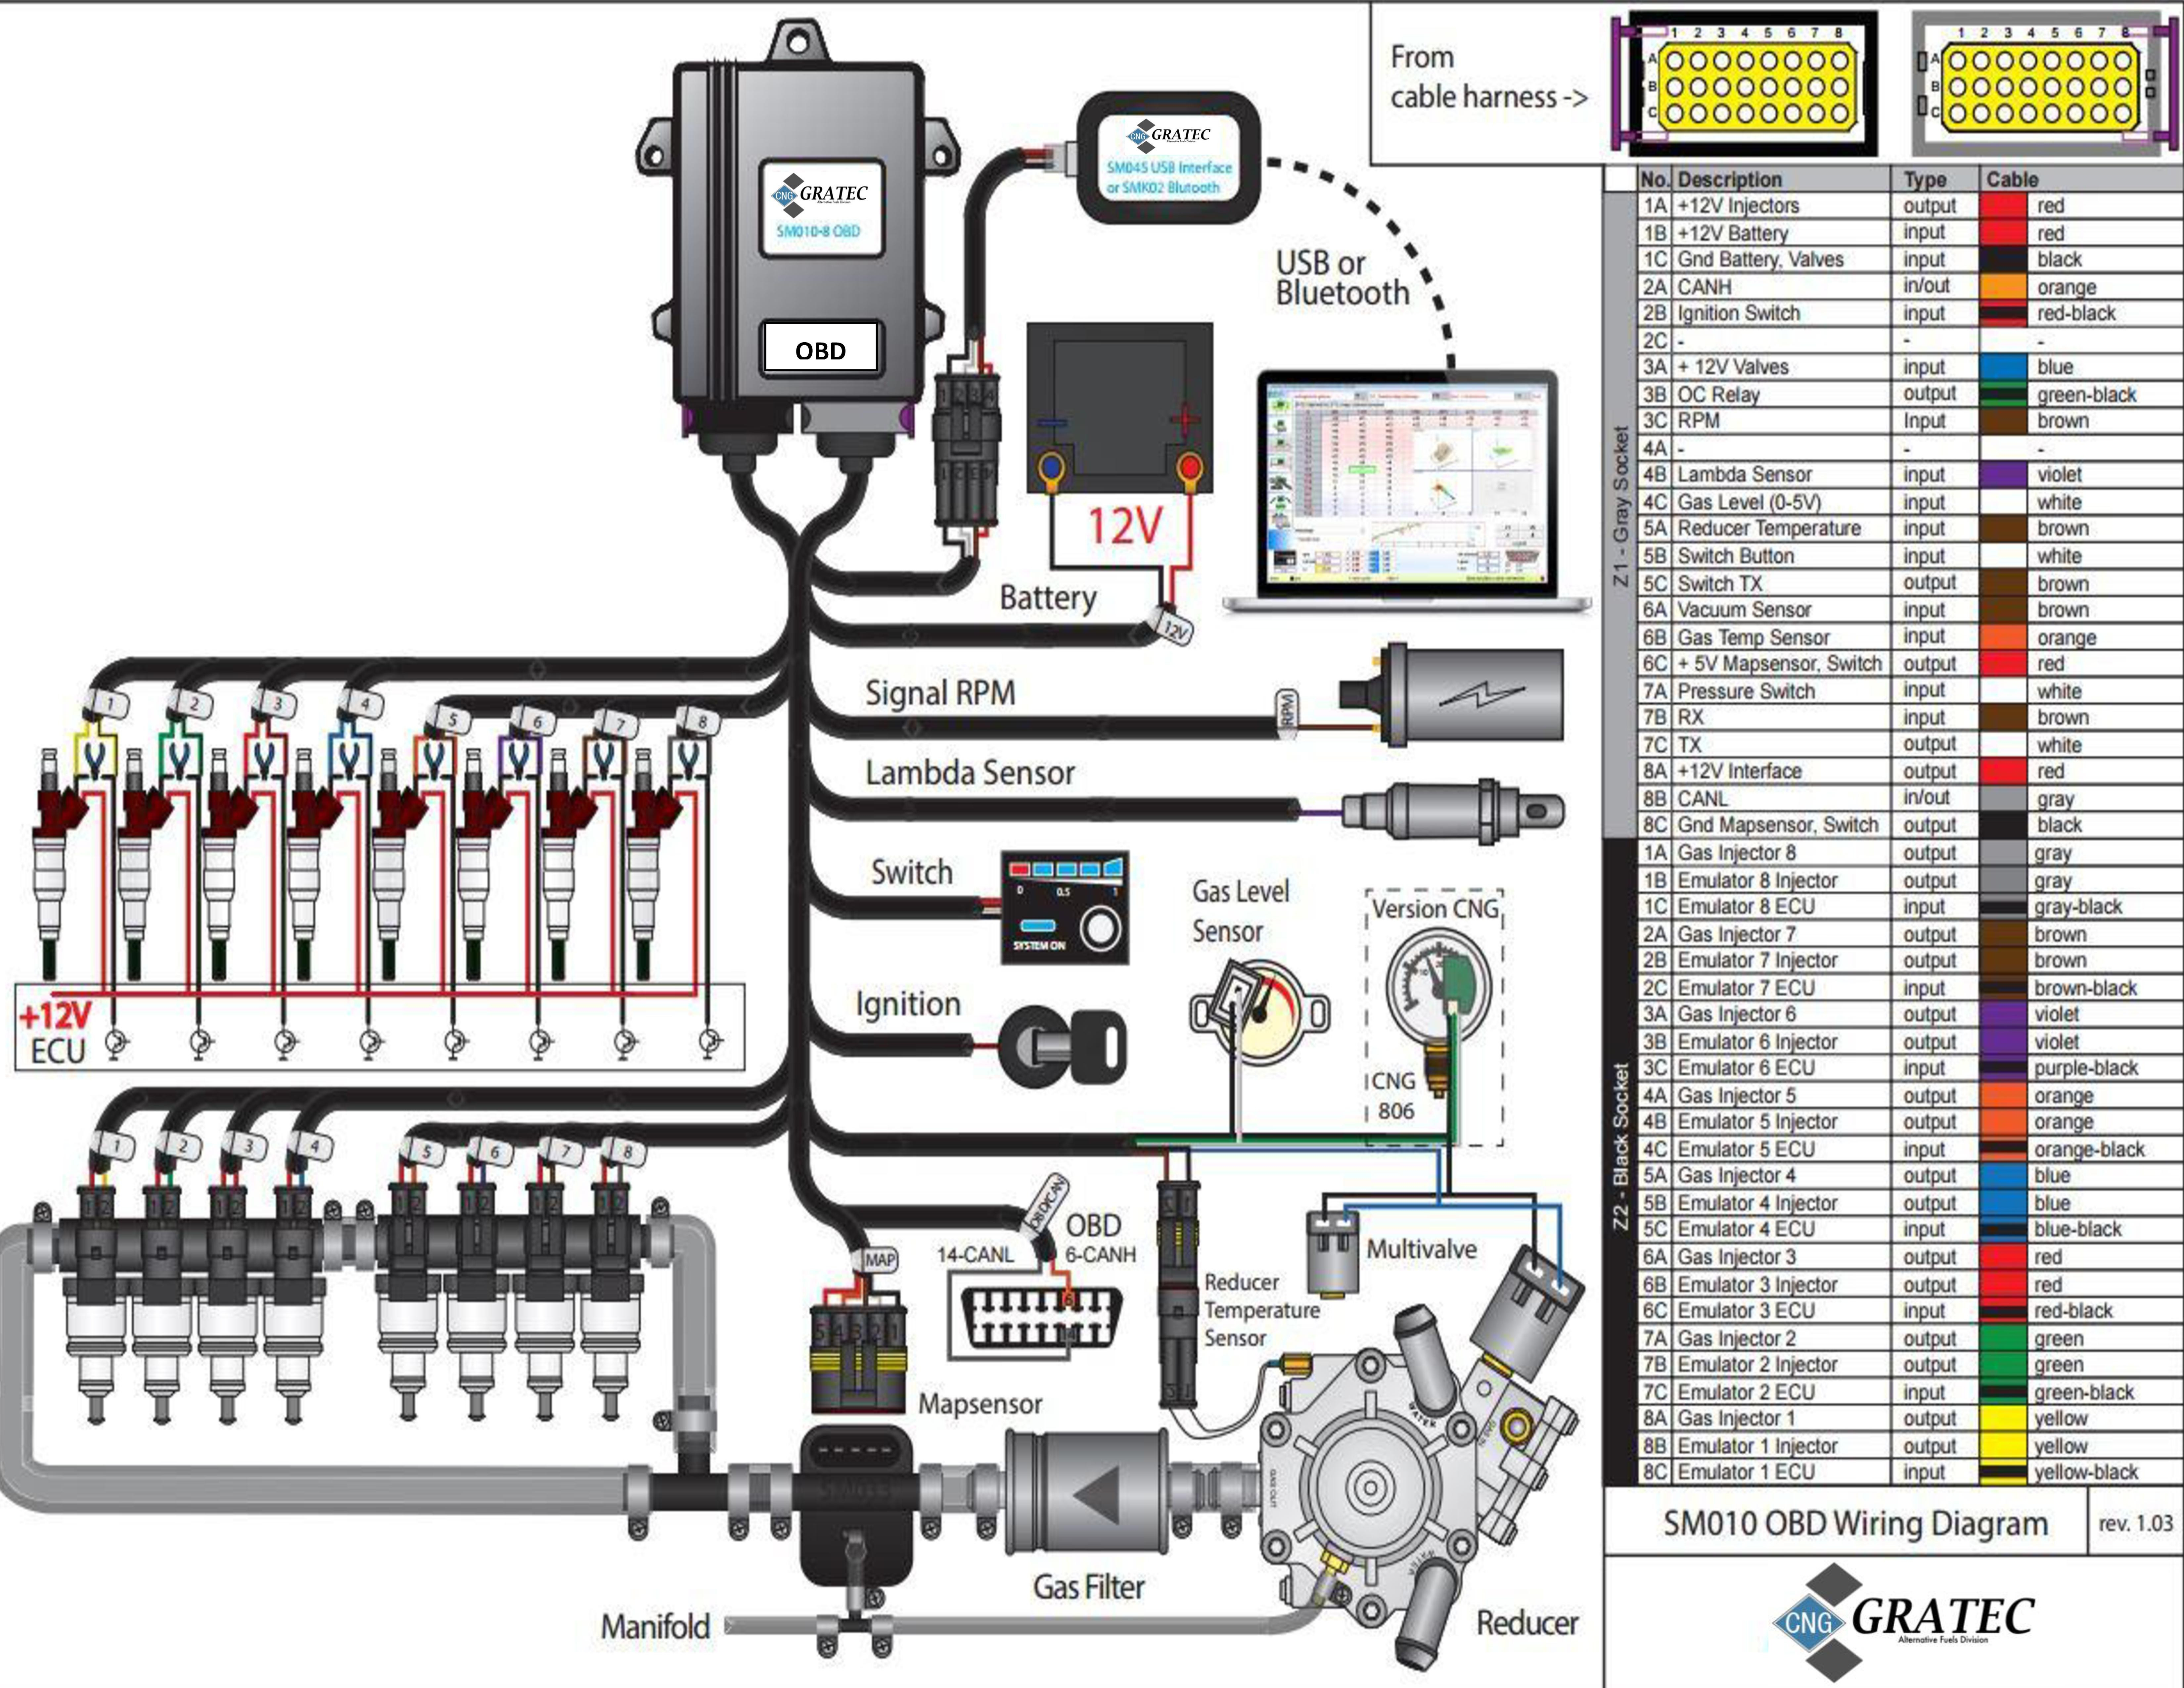 Vtec Wiring Diagram Obd1 New Image Harness Obd2 Wire 2018 Awesome Delighted Obd Wires S Electrical